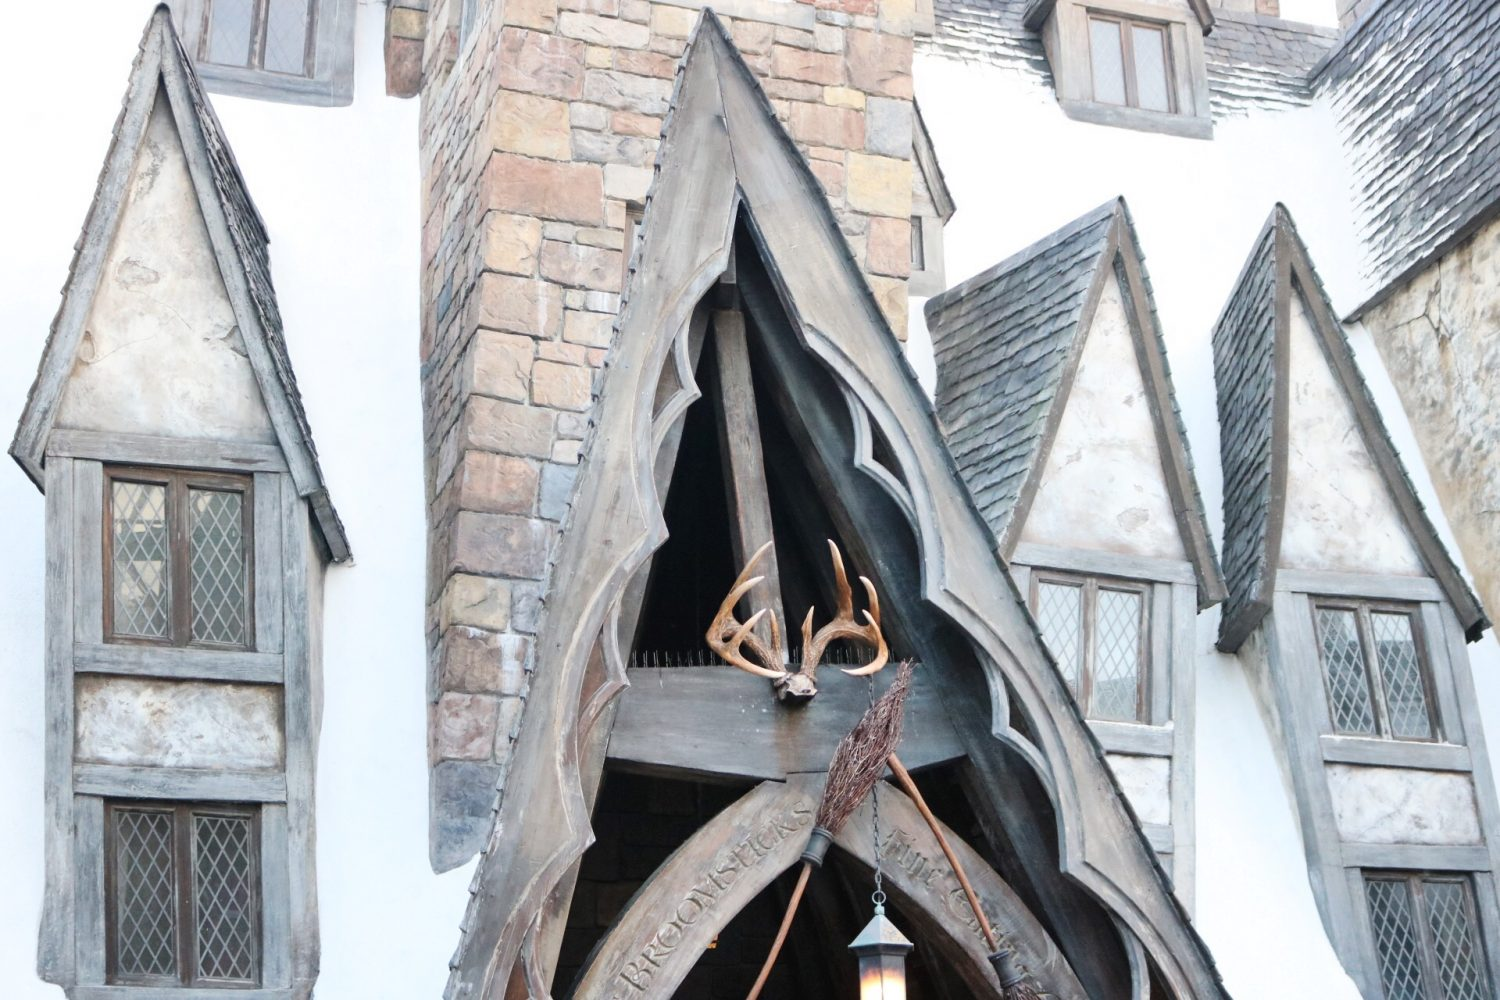 The Three Broomsticks Wizarding World of Harry Potter